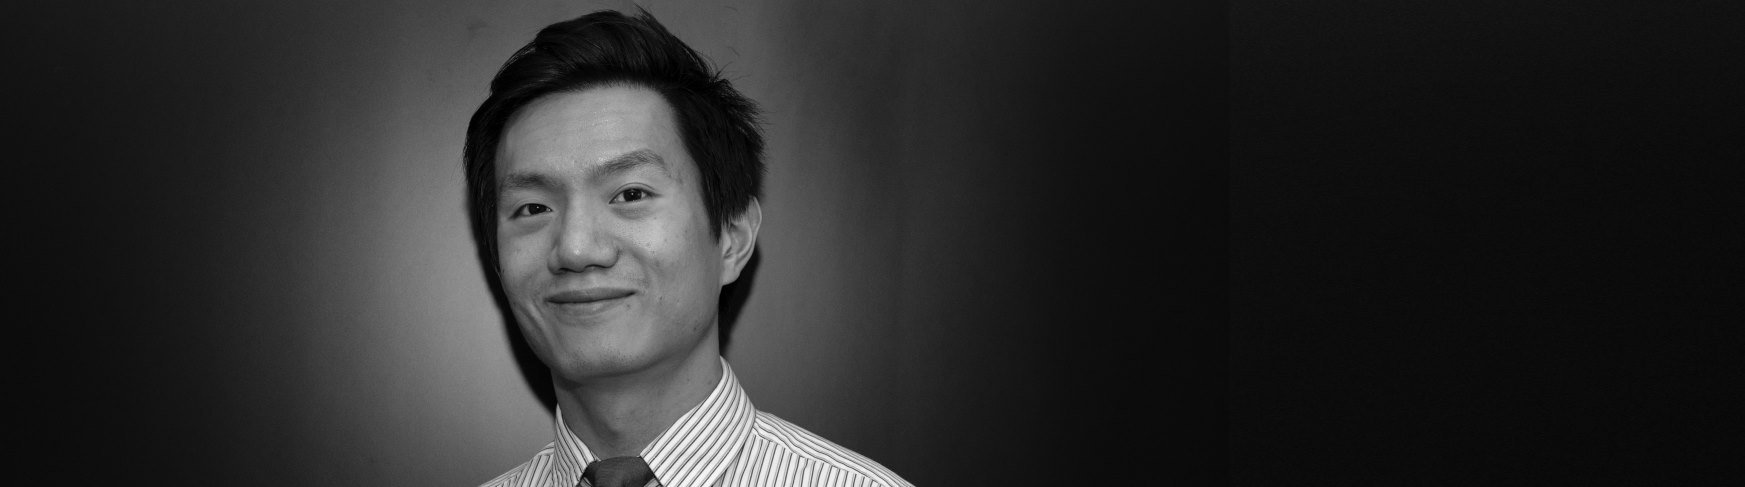 Greg Tan: The key ingredient for business success Social